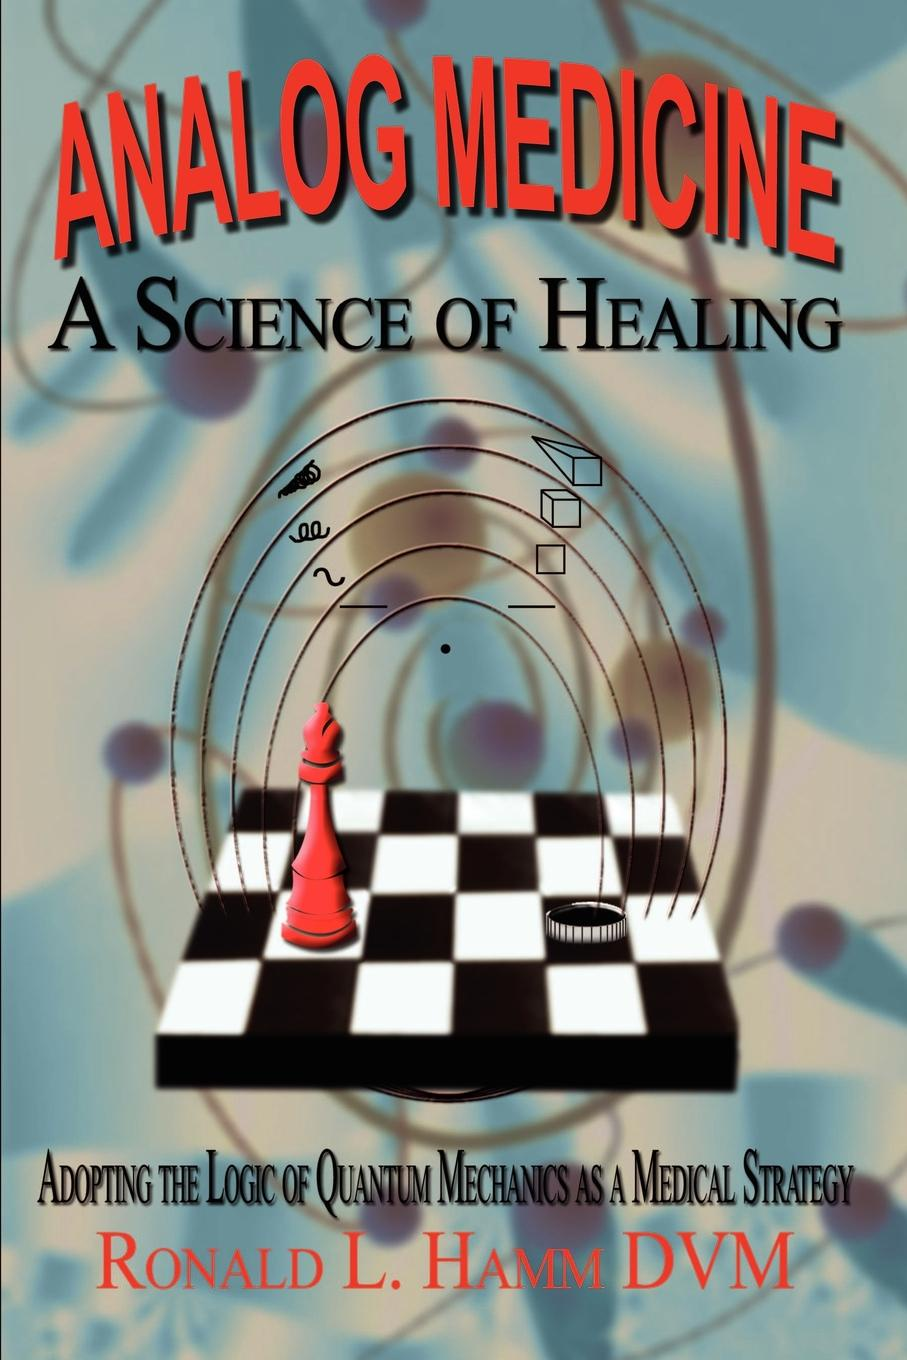 Ronald L. Hamm DVM Analog Medicine - A Science of Healing. Adopting the Logic of Quantum Mechanics as a Medical Strategy muthuraman s mechanics of materials